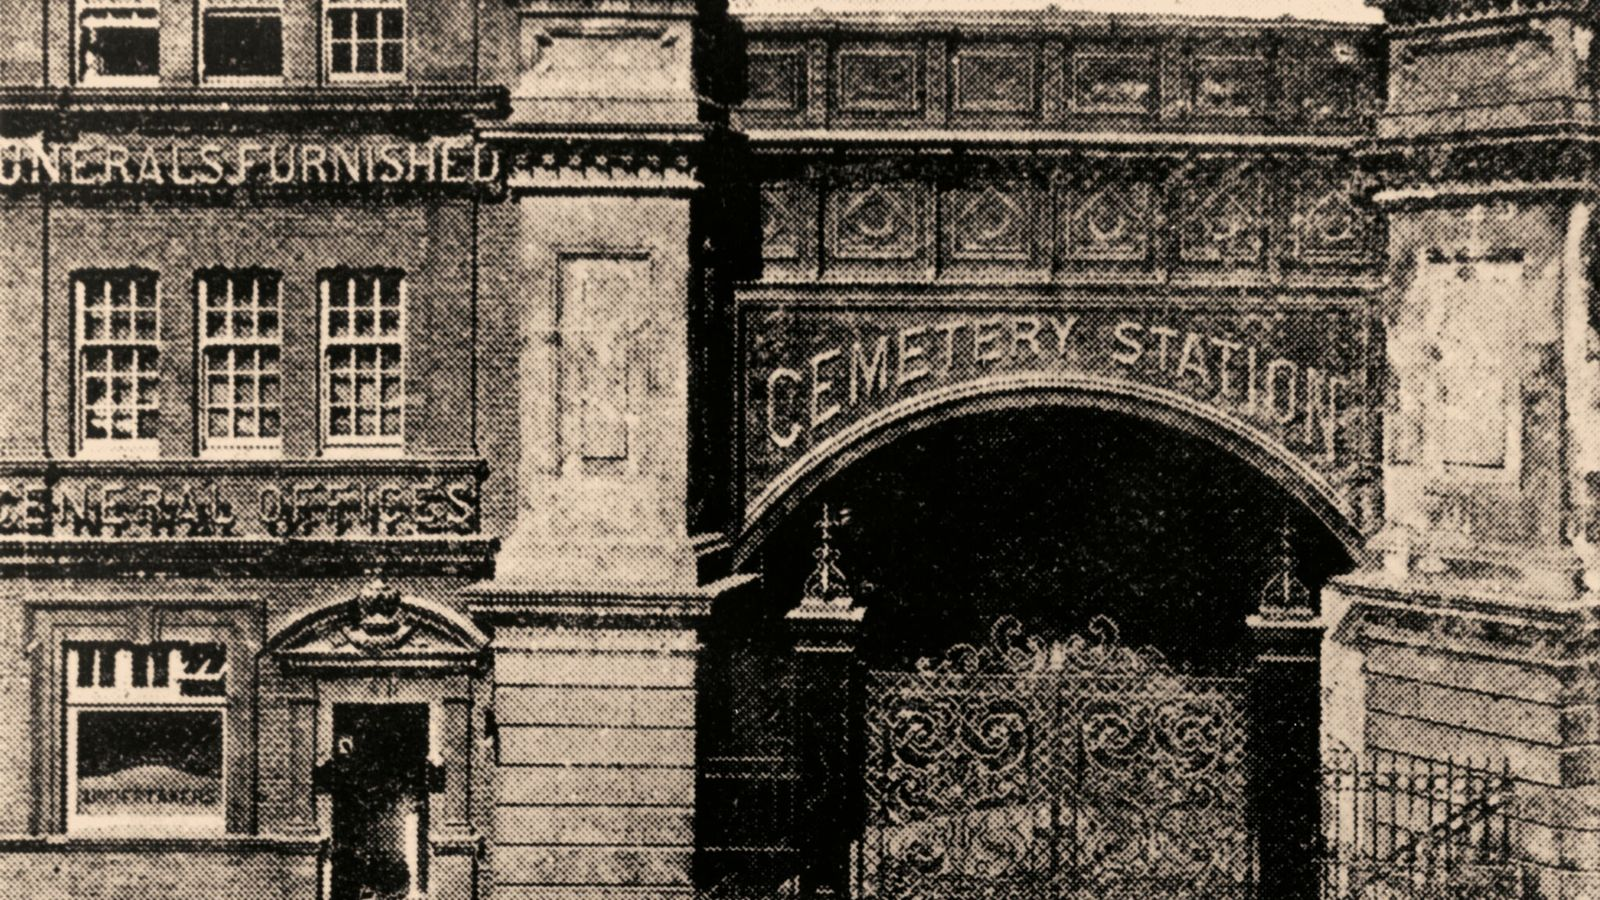 The enterance to the necropolis railway at Waterloo Station in London, photographed in the 1890s, which ...